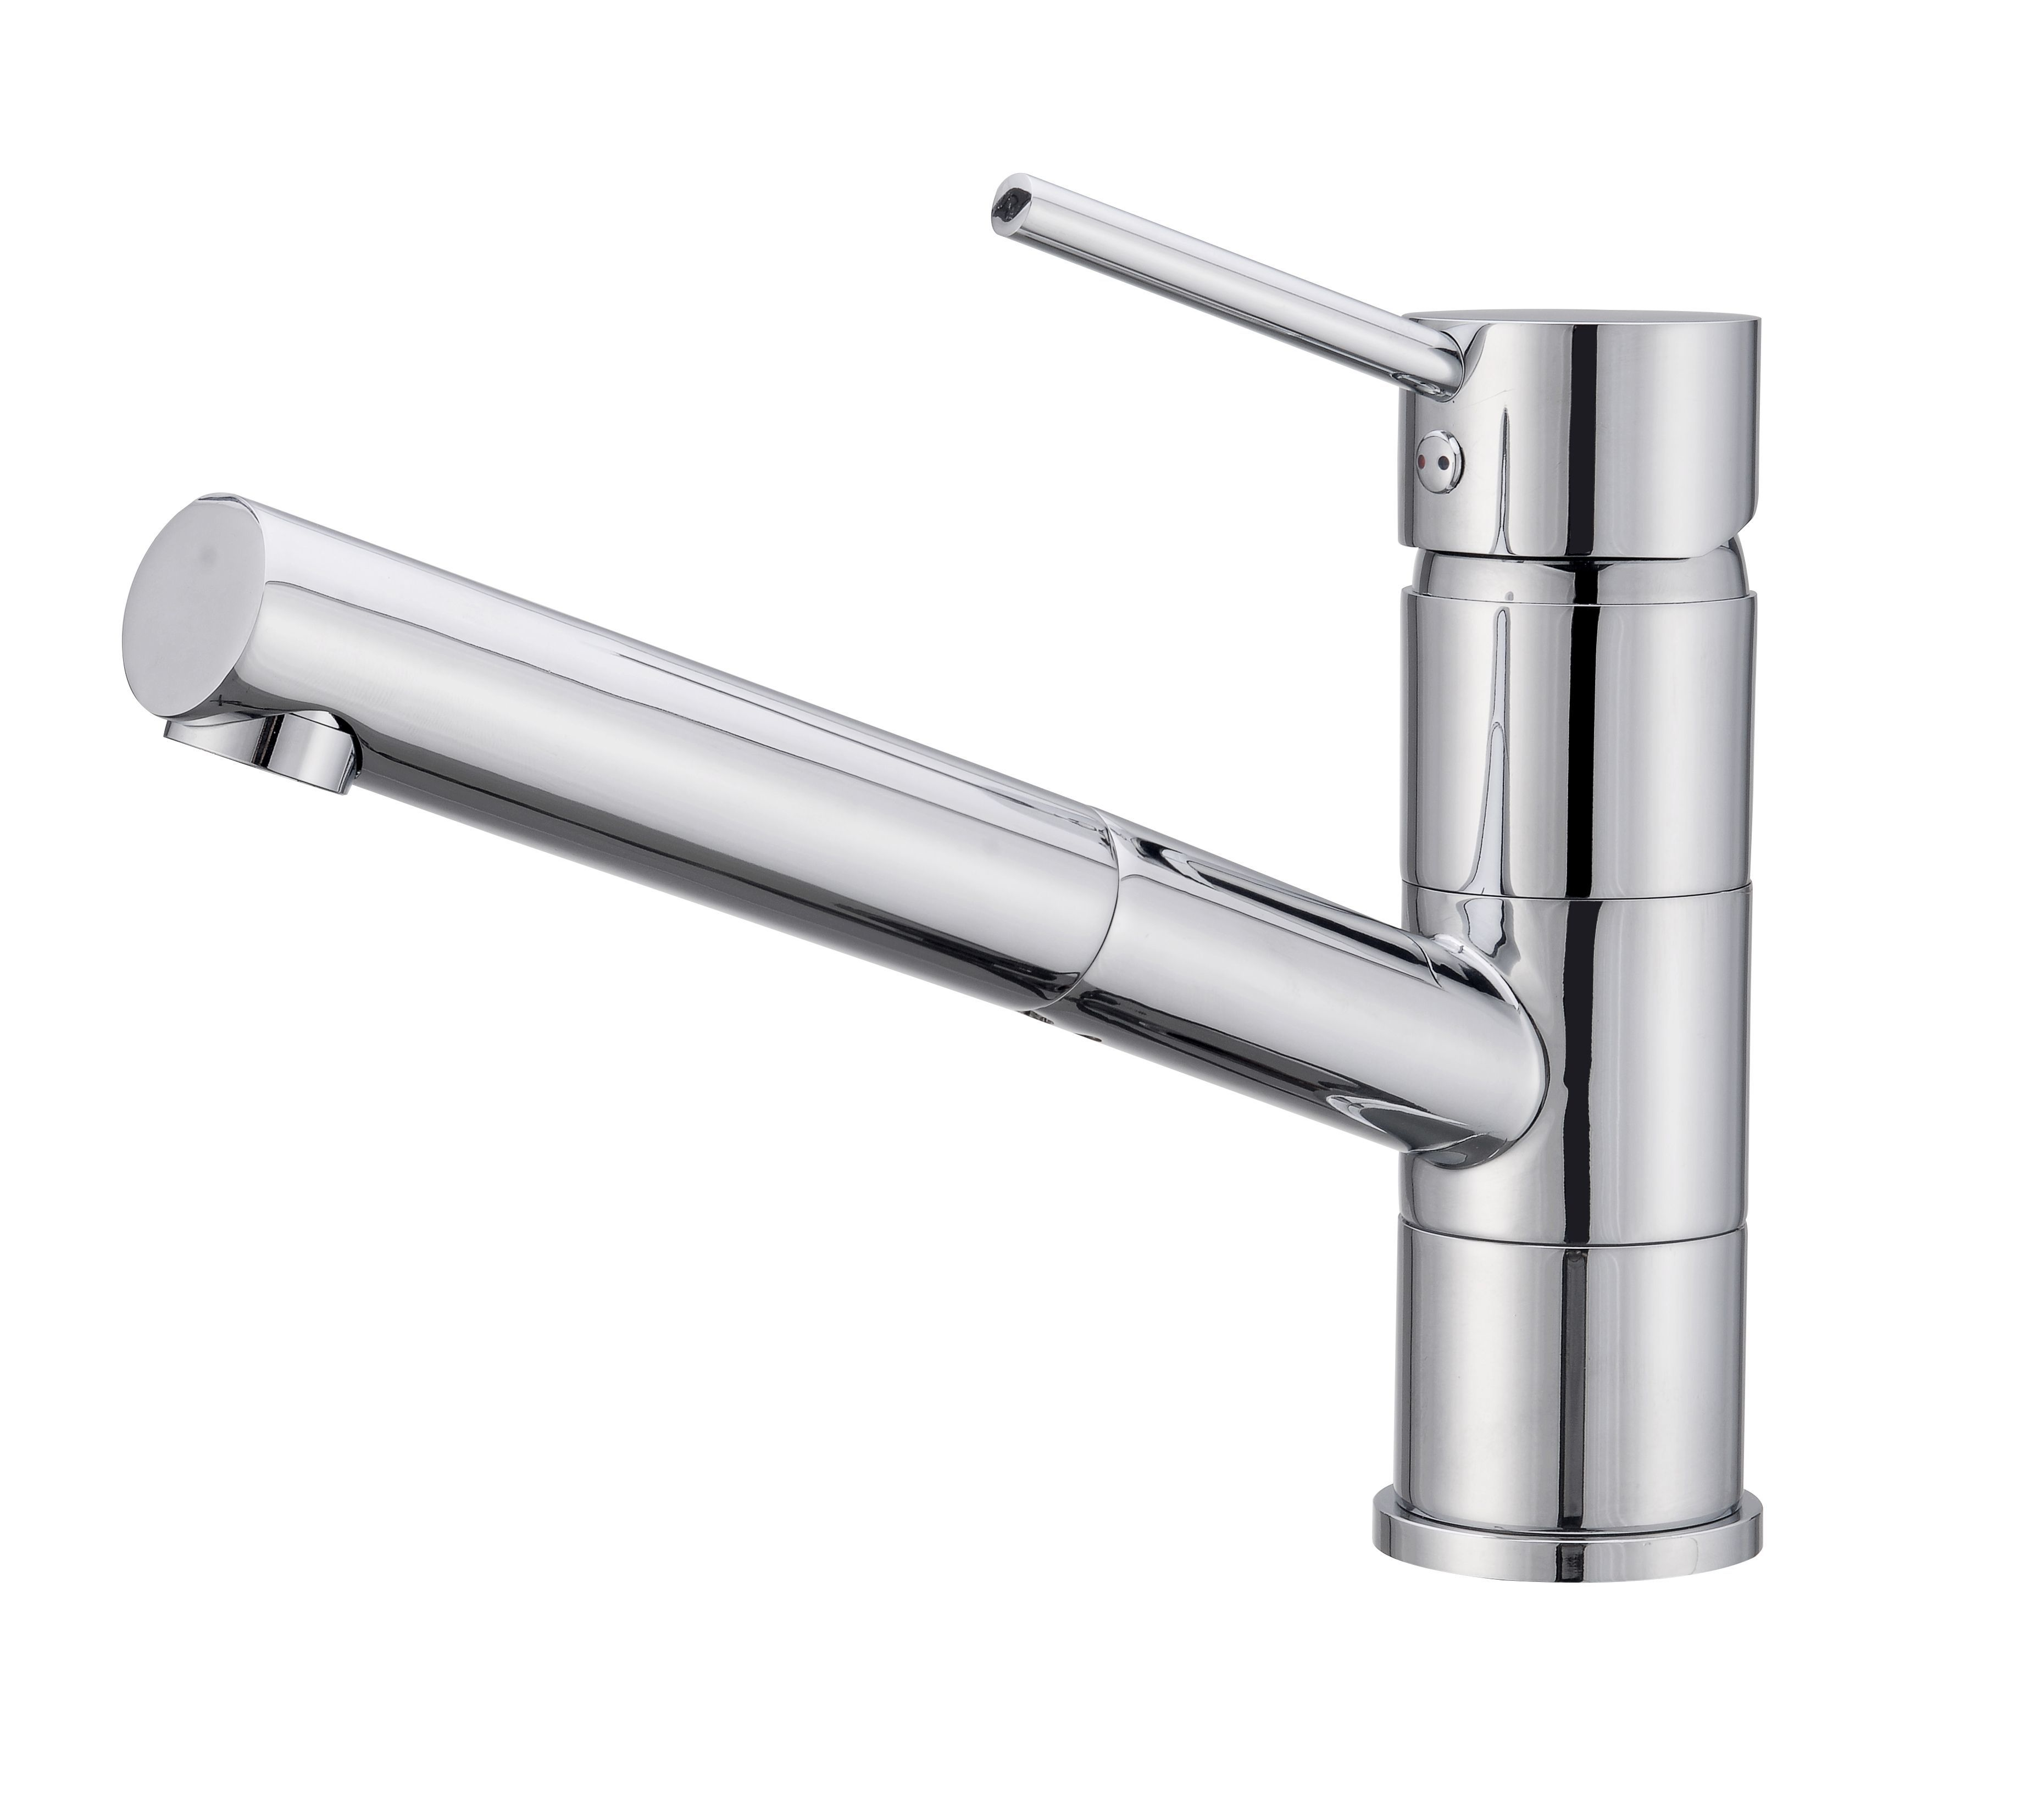 Cooke Amp Lewis Jonha Chrome Finish Kitchen Top Lever Tap